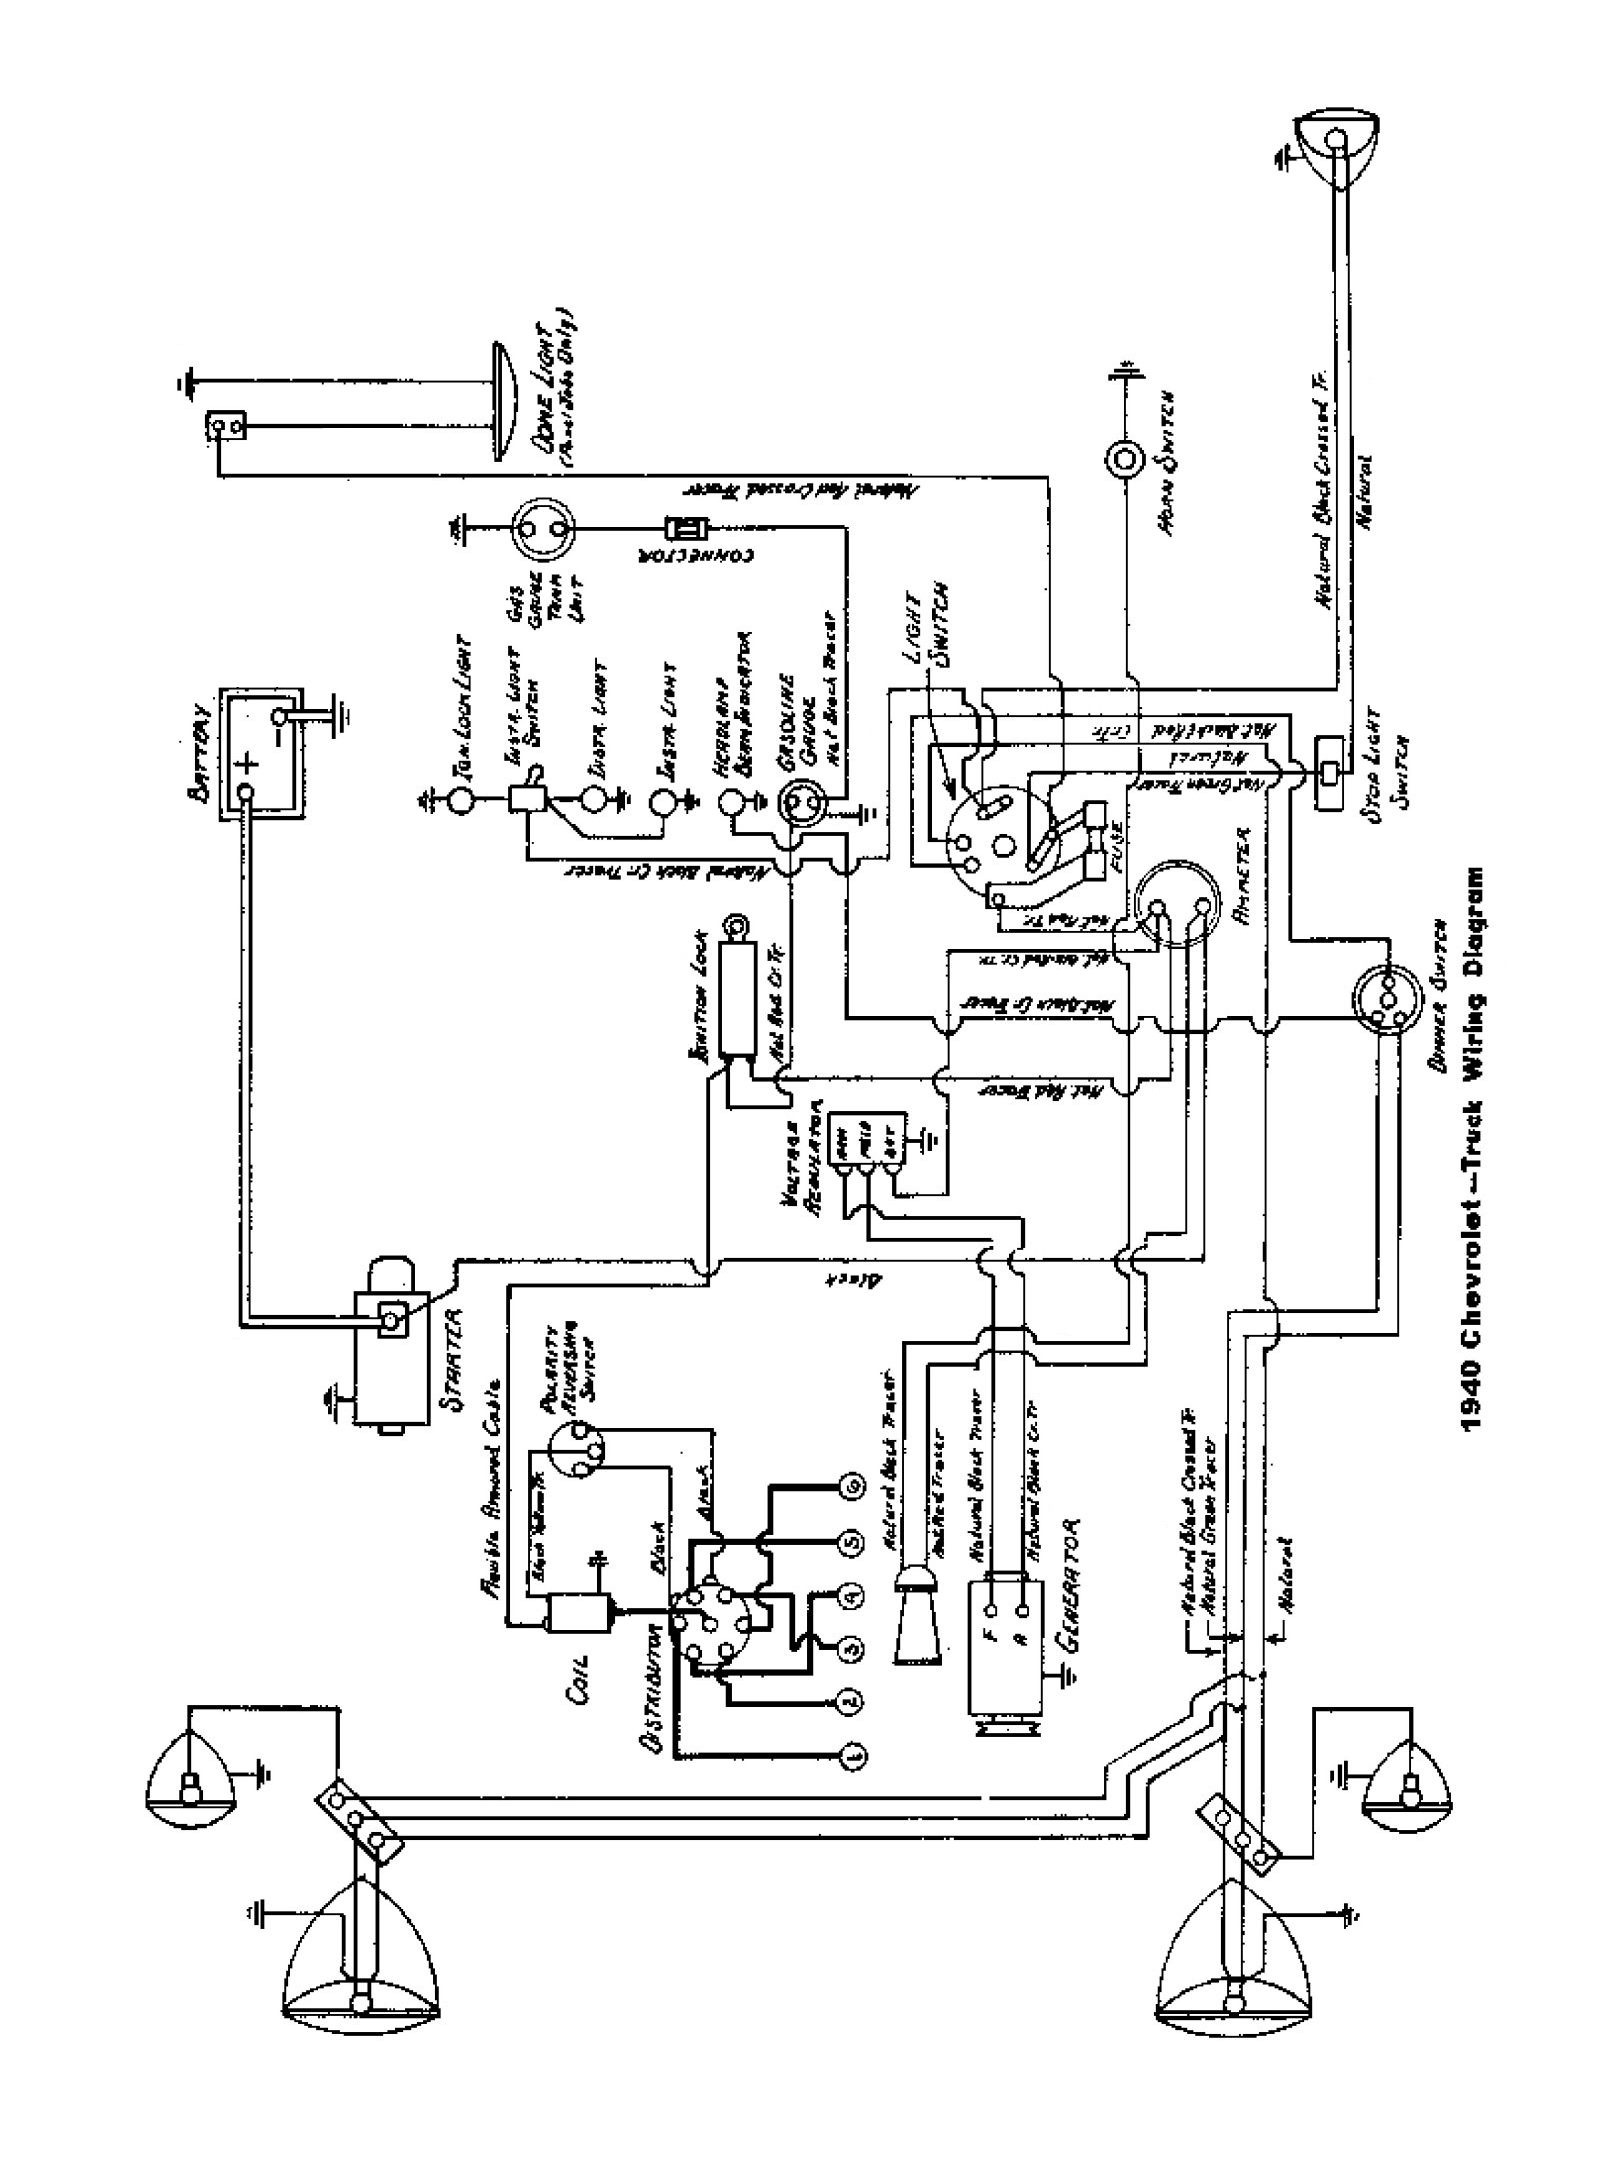 Chevy Wiring diagrams on 1961 chevrolet truck, 1961 ford apache, 1958 gmc apache, chippewa apache, 1961 chevrolet deluxe, chevy apache, jeep apache, 1961 chevrolet stepside,